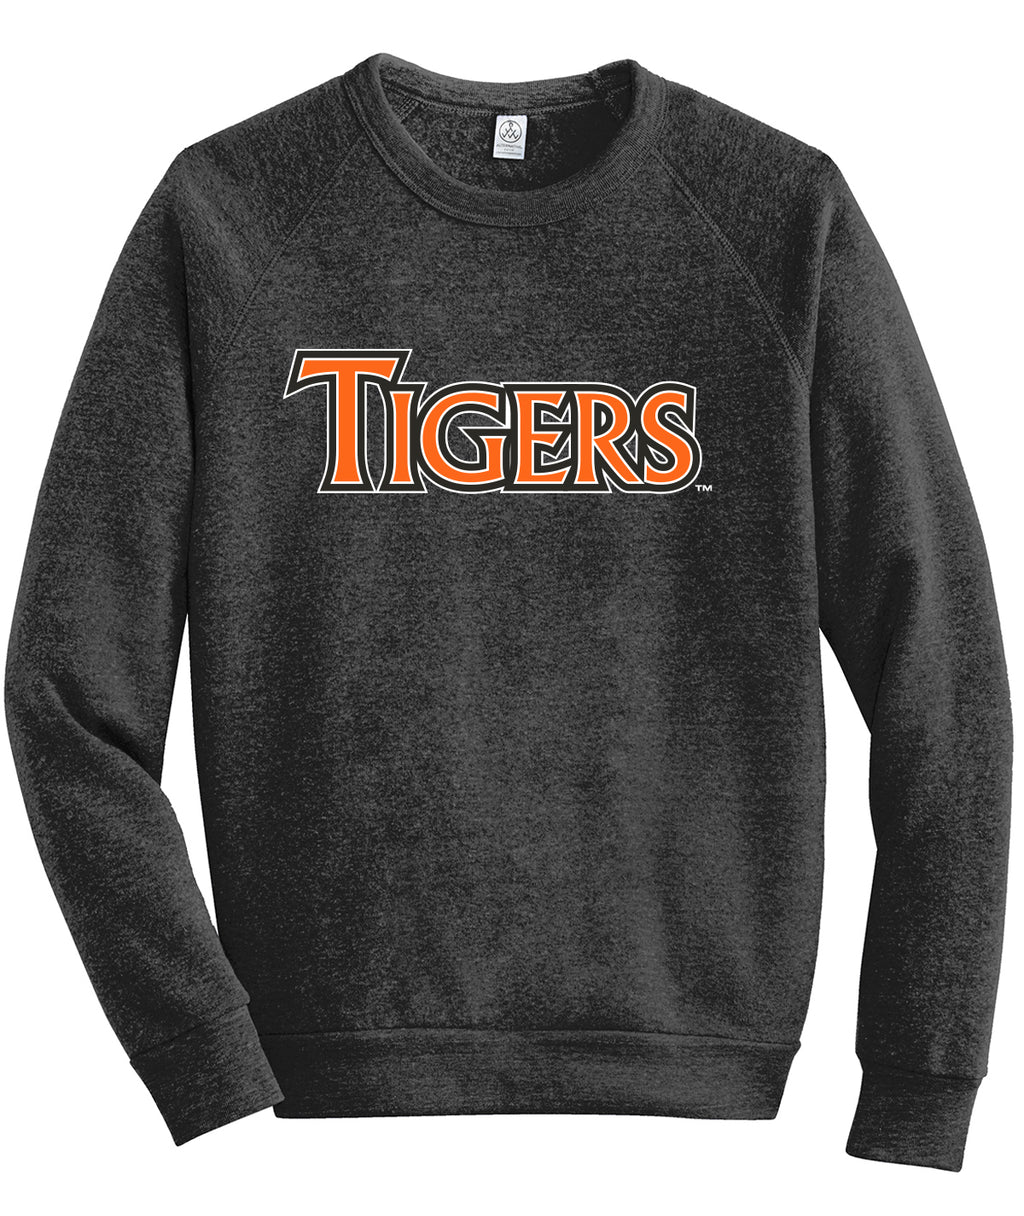 HIllside Tigers Raglan Sweatshirt